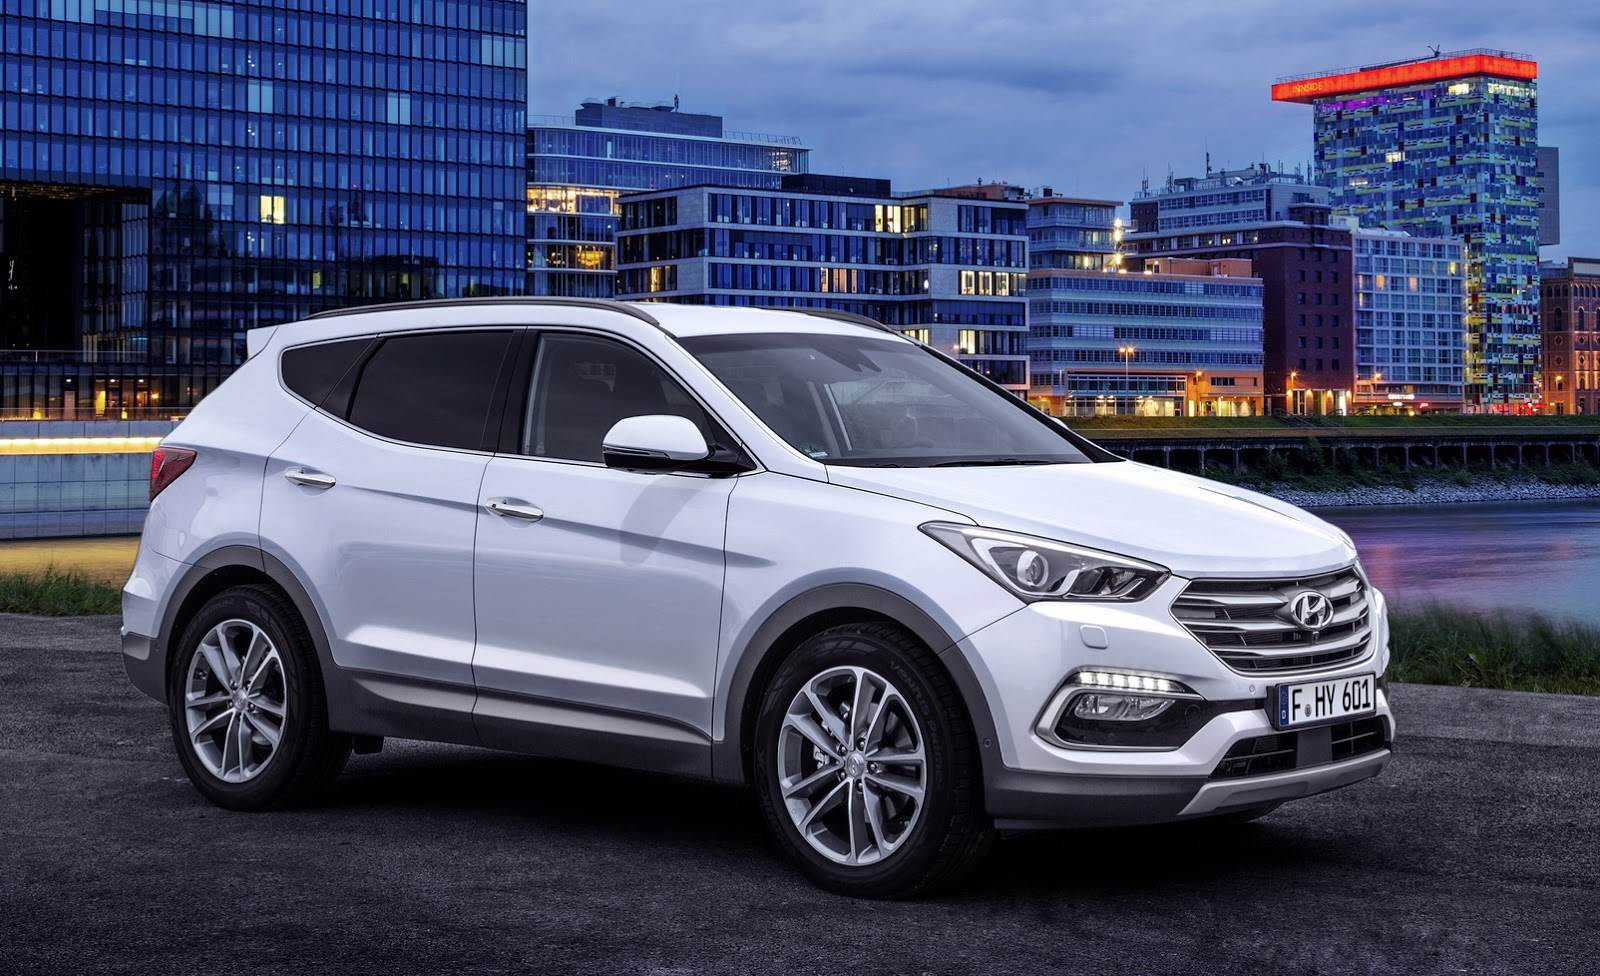 Hyundai to expand global SUV line-up